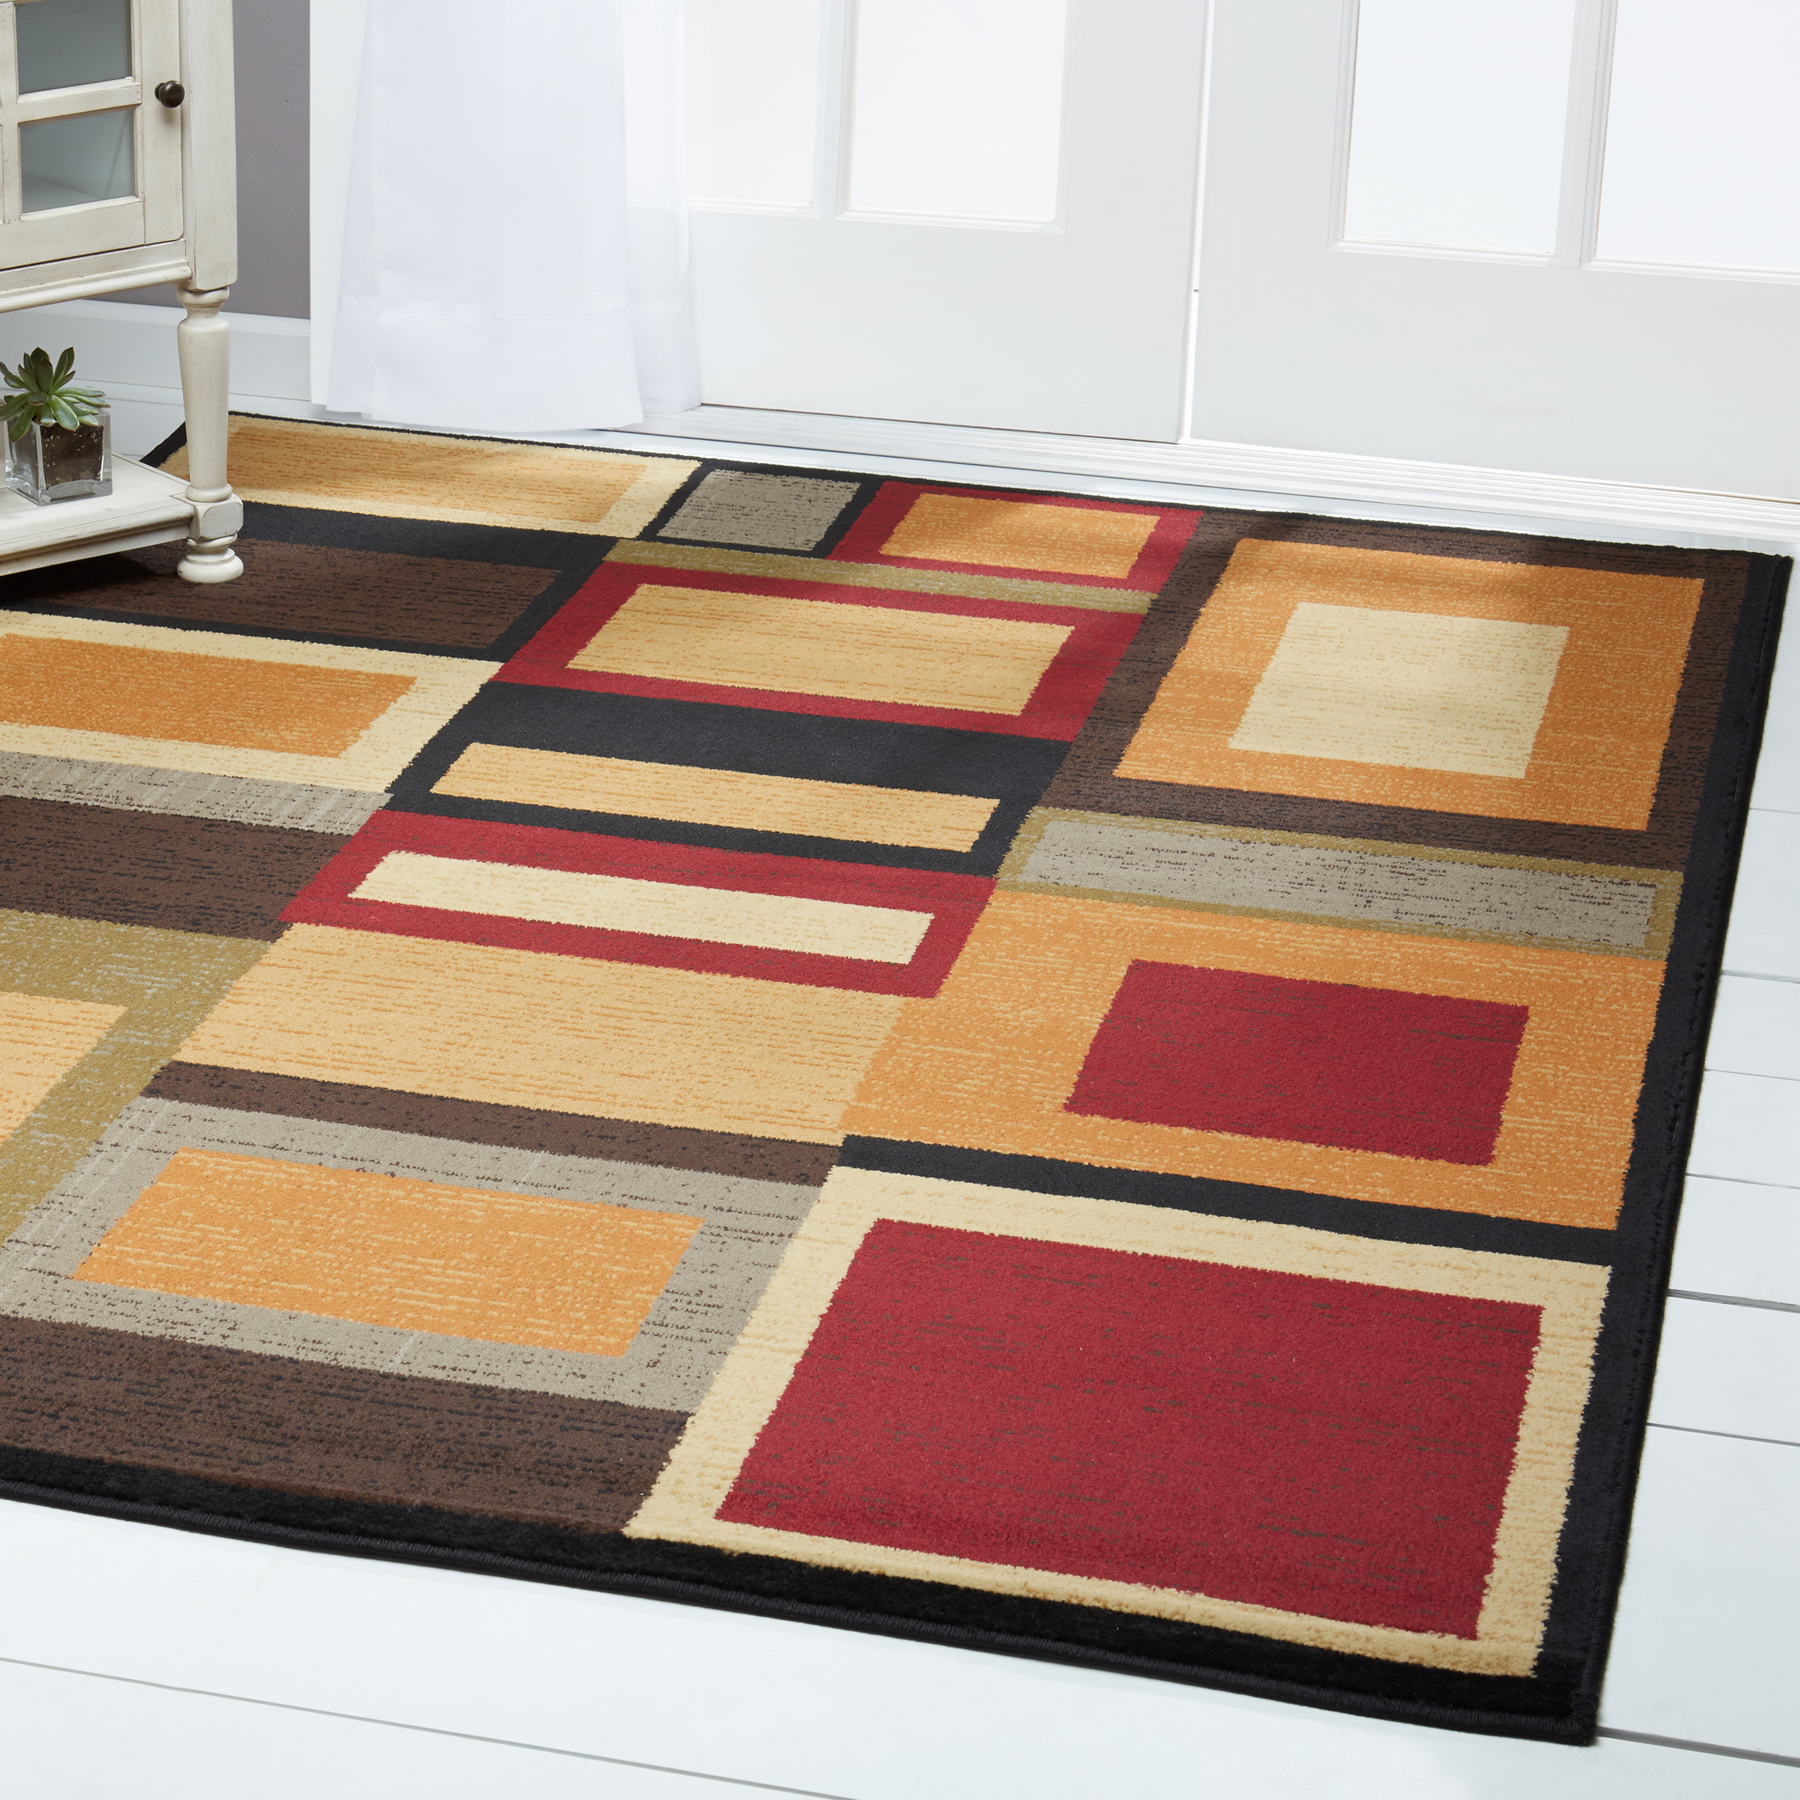 Details About Multi Contemporary Round Area Rug 3x3 Modern Geometric Carpet Actual 3 3 X3 3